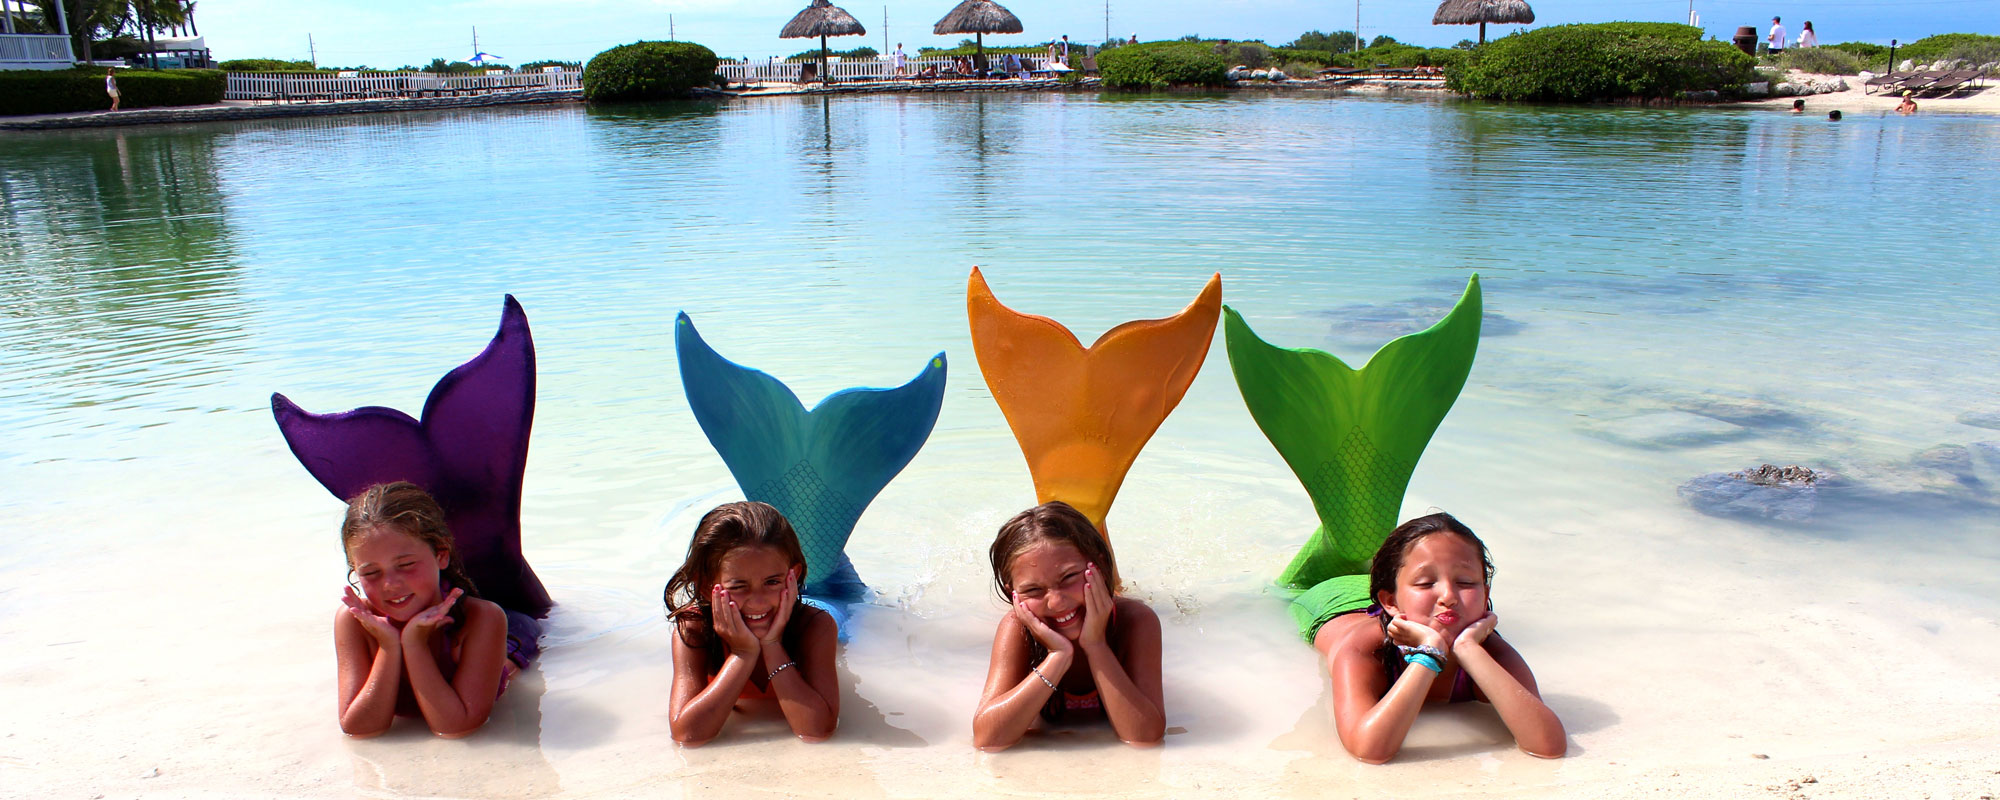 Mermaid Tails For Kids | Swimmable Mermaid Tails | Mermaid